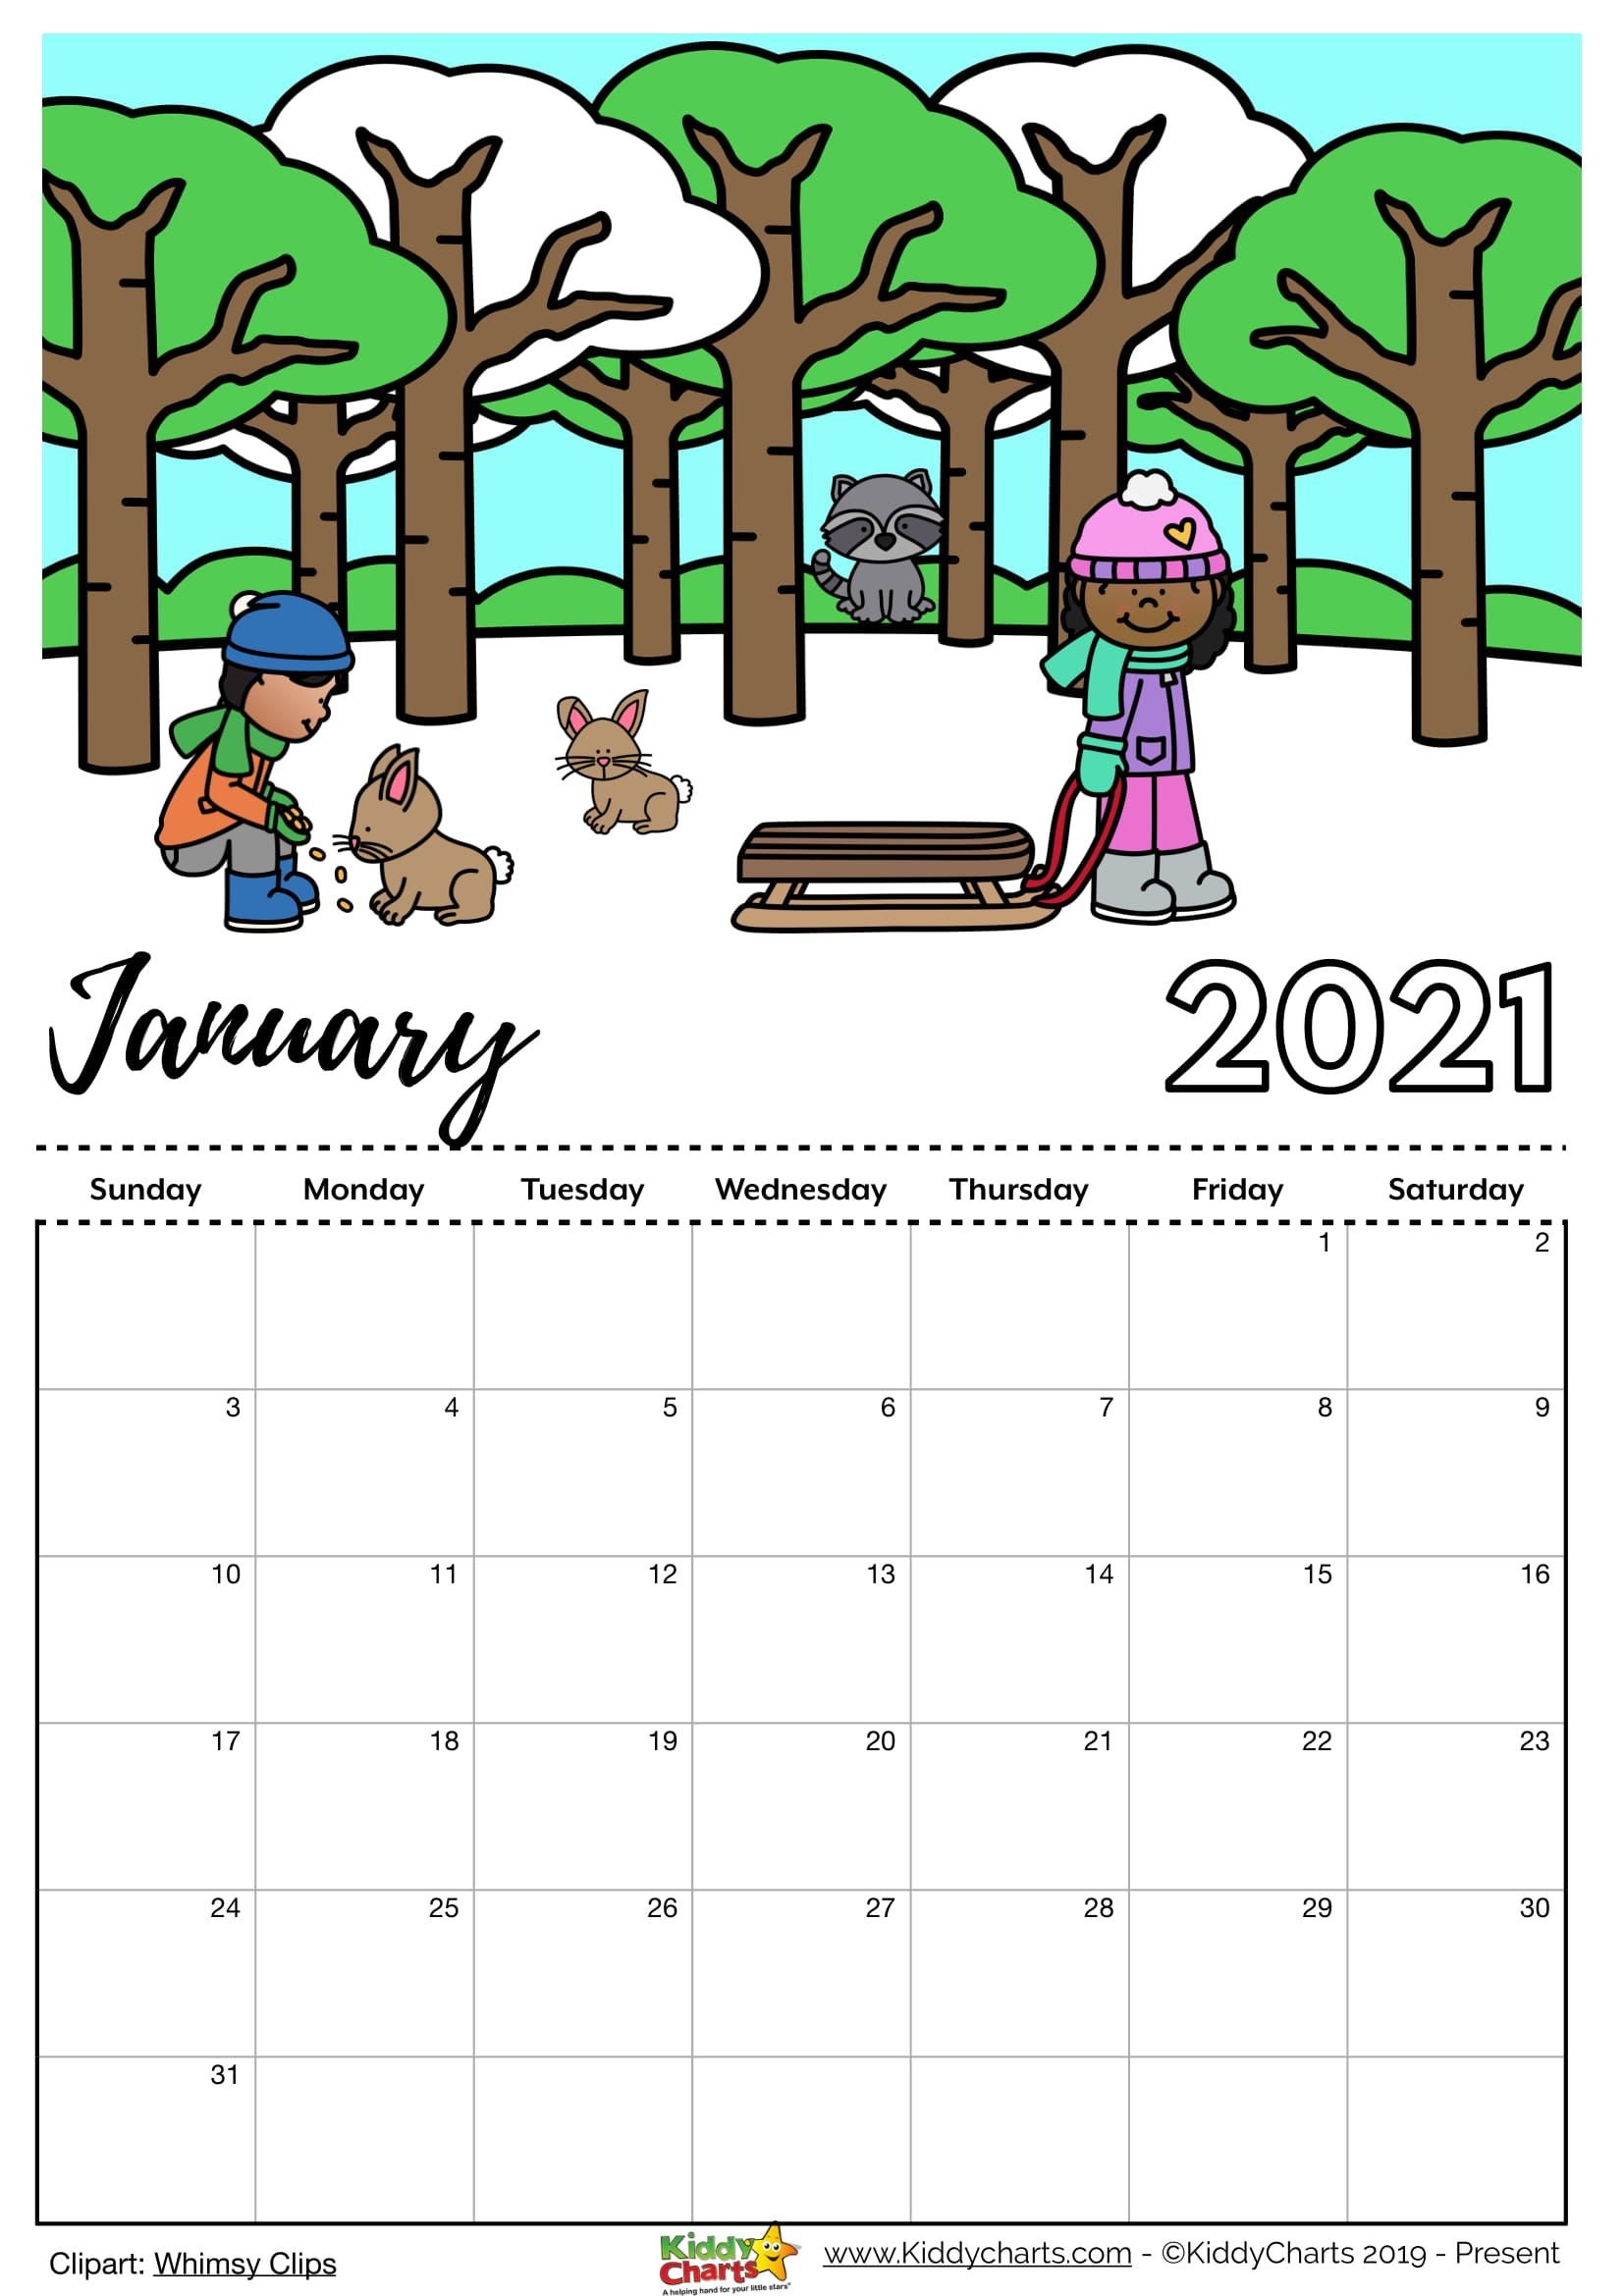 Printable Childrens Calendar 2021 Check our new free printable 2021 calendar! in 2020 | Printable